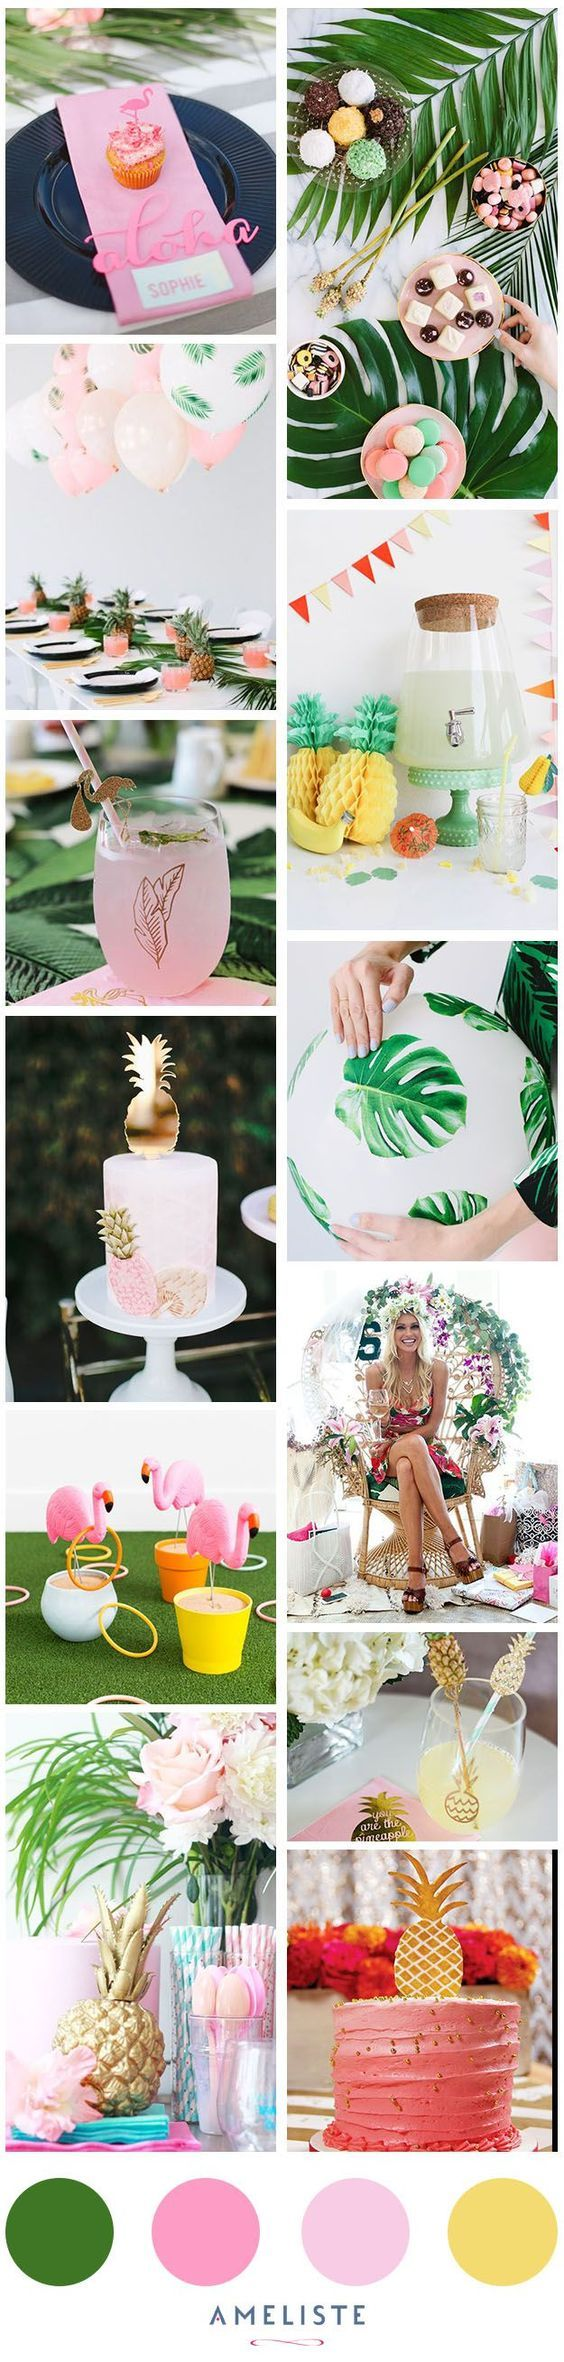 An elegant luau party.: More